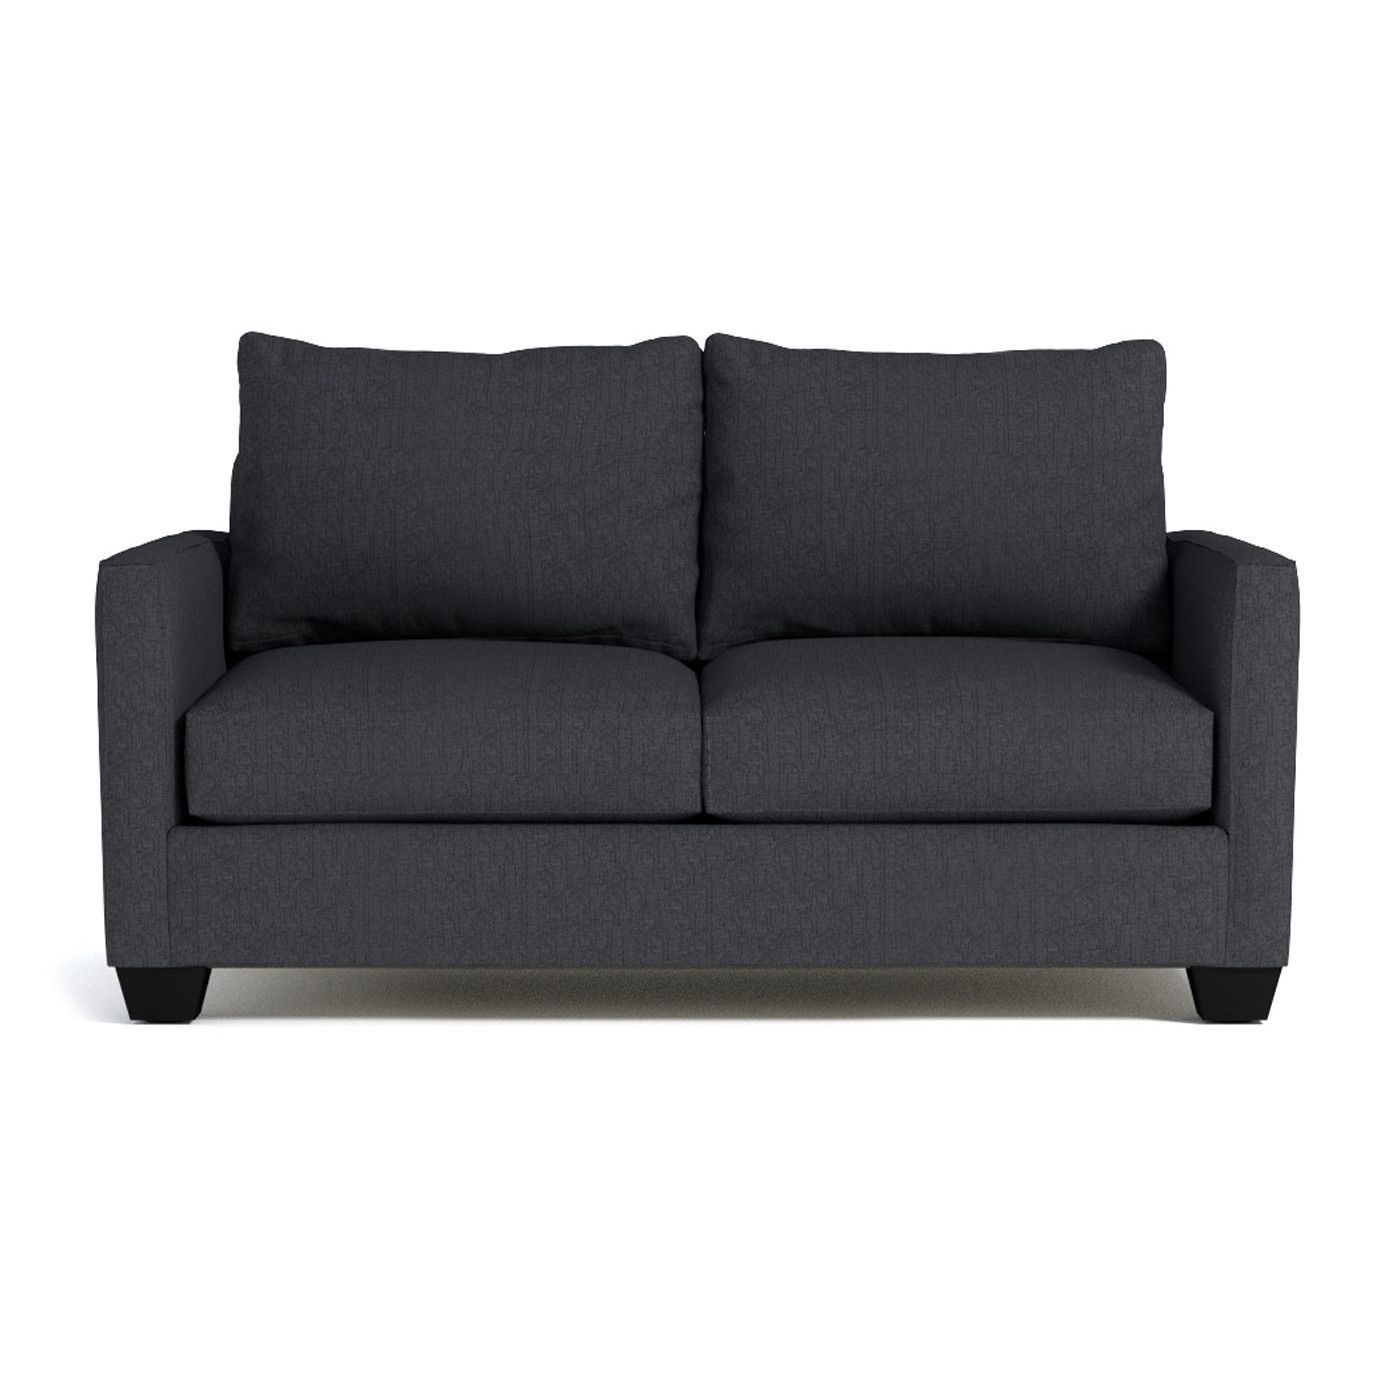 Make A Stylish Statement In Your Home And Offer Guests Cozy Crash Pad With The Tuxedo Apartment Size Sofa Bed